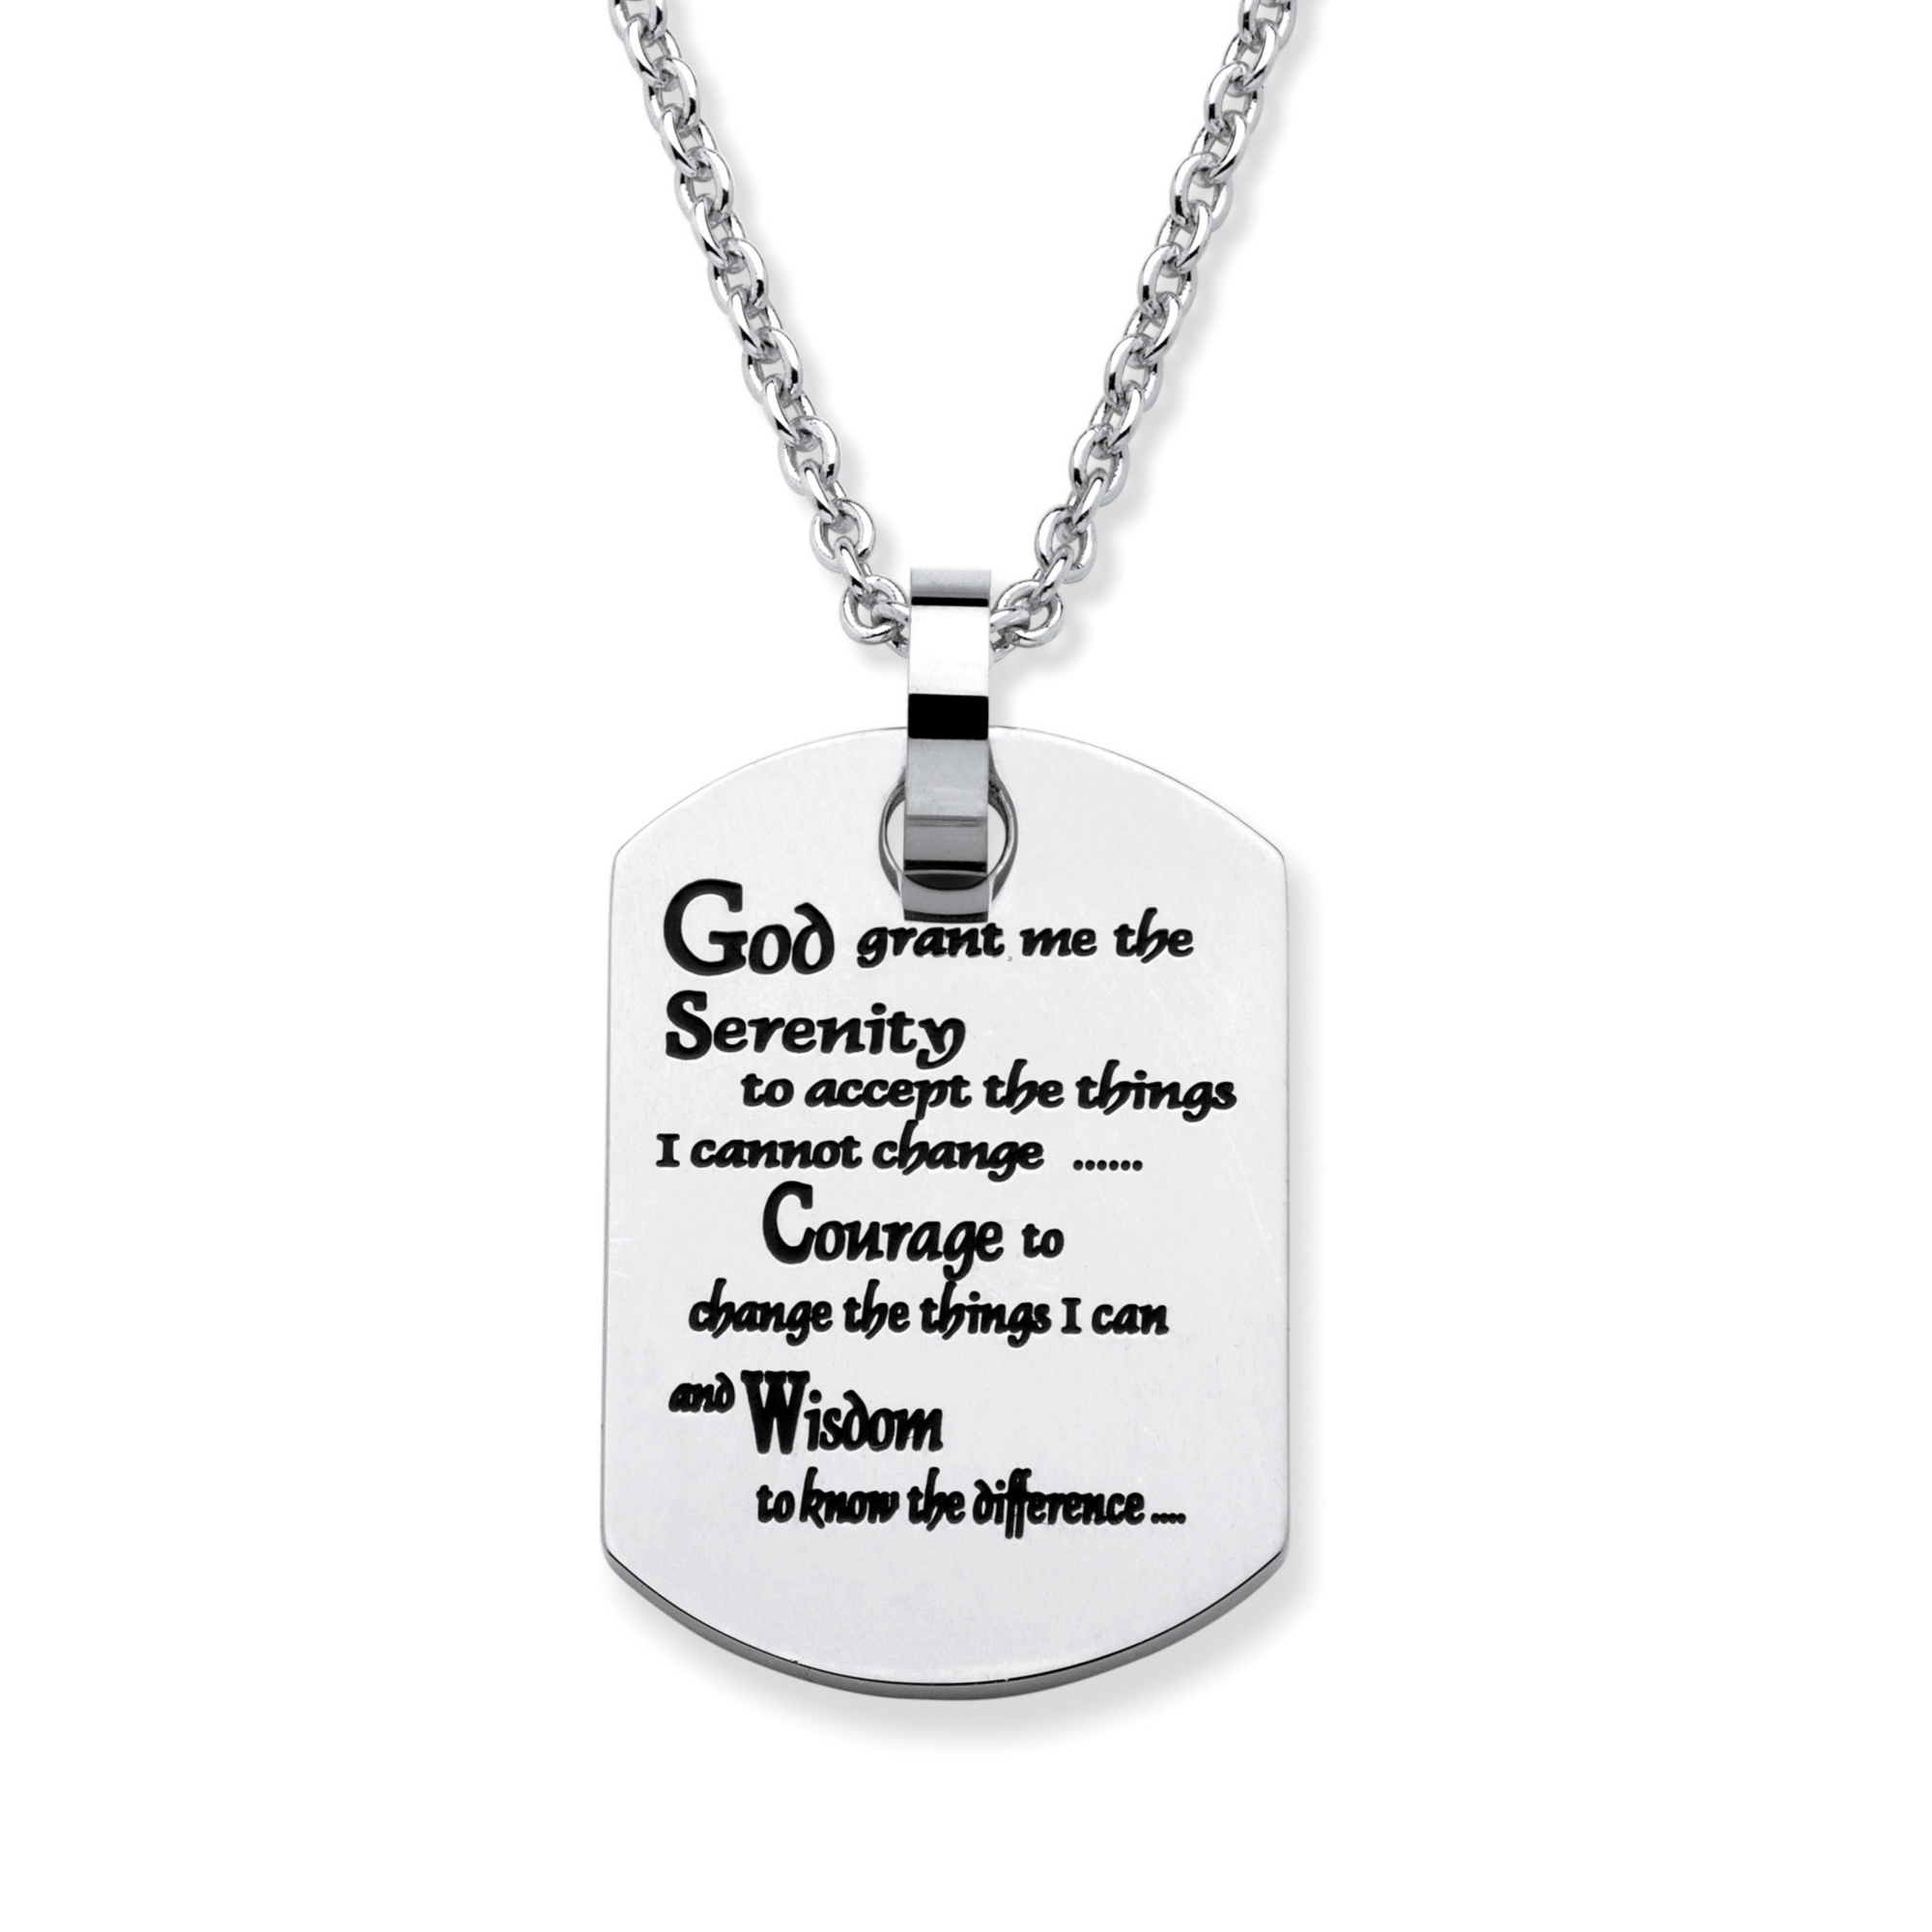 necklace prayer moreview sided serenity pendant double coin stainless lightbox steel